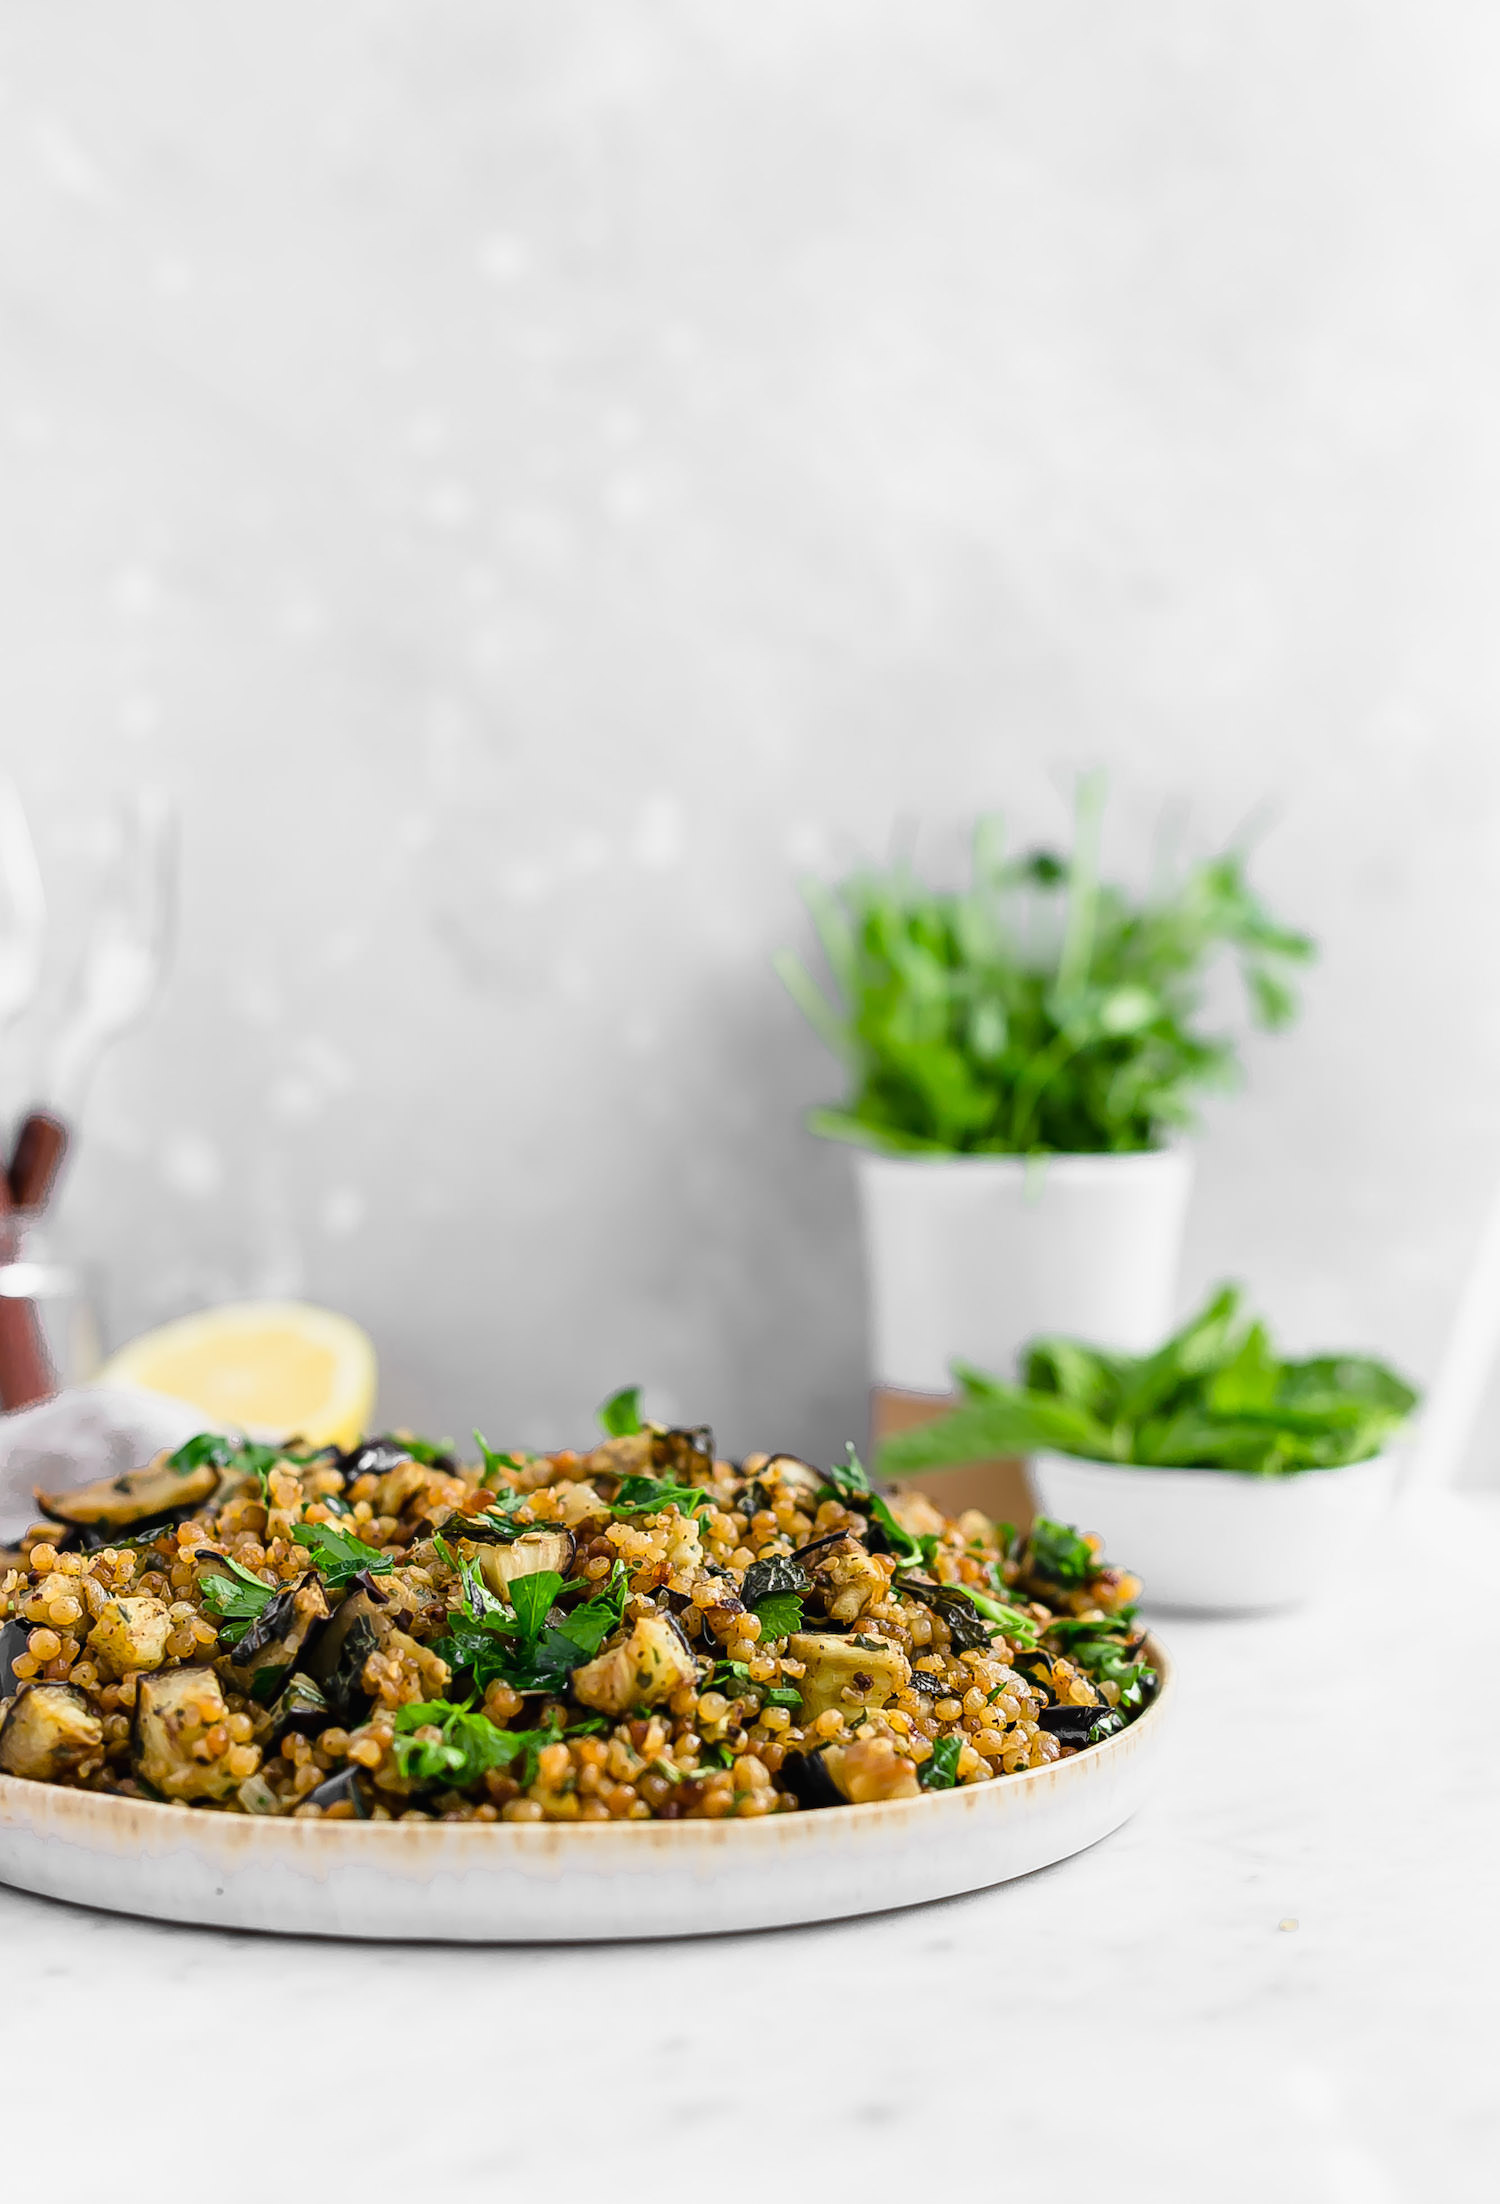 Herby Eggplant Israeli Couscous: toasted pearl couscous tossed with caramelized onions, roasted eggplant, and fresh parsley and mint. So good! | TrufflesandTrends.com